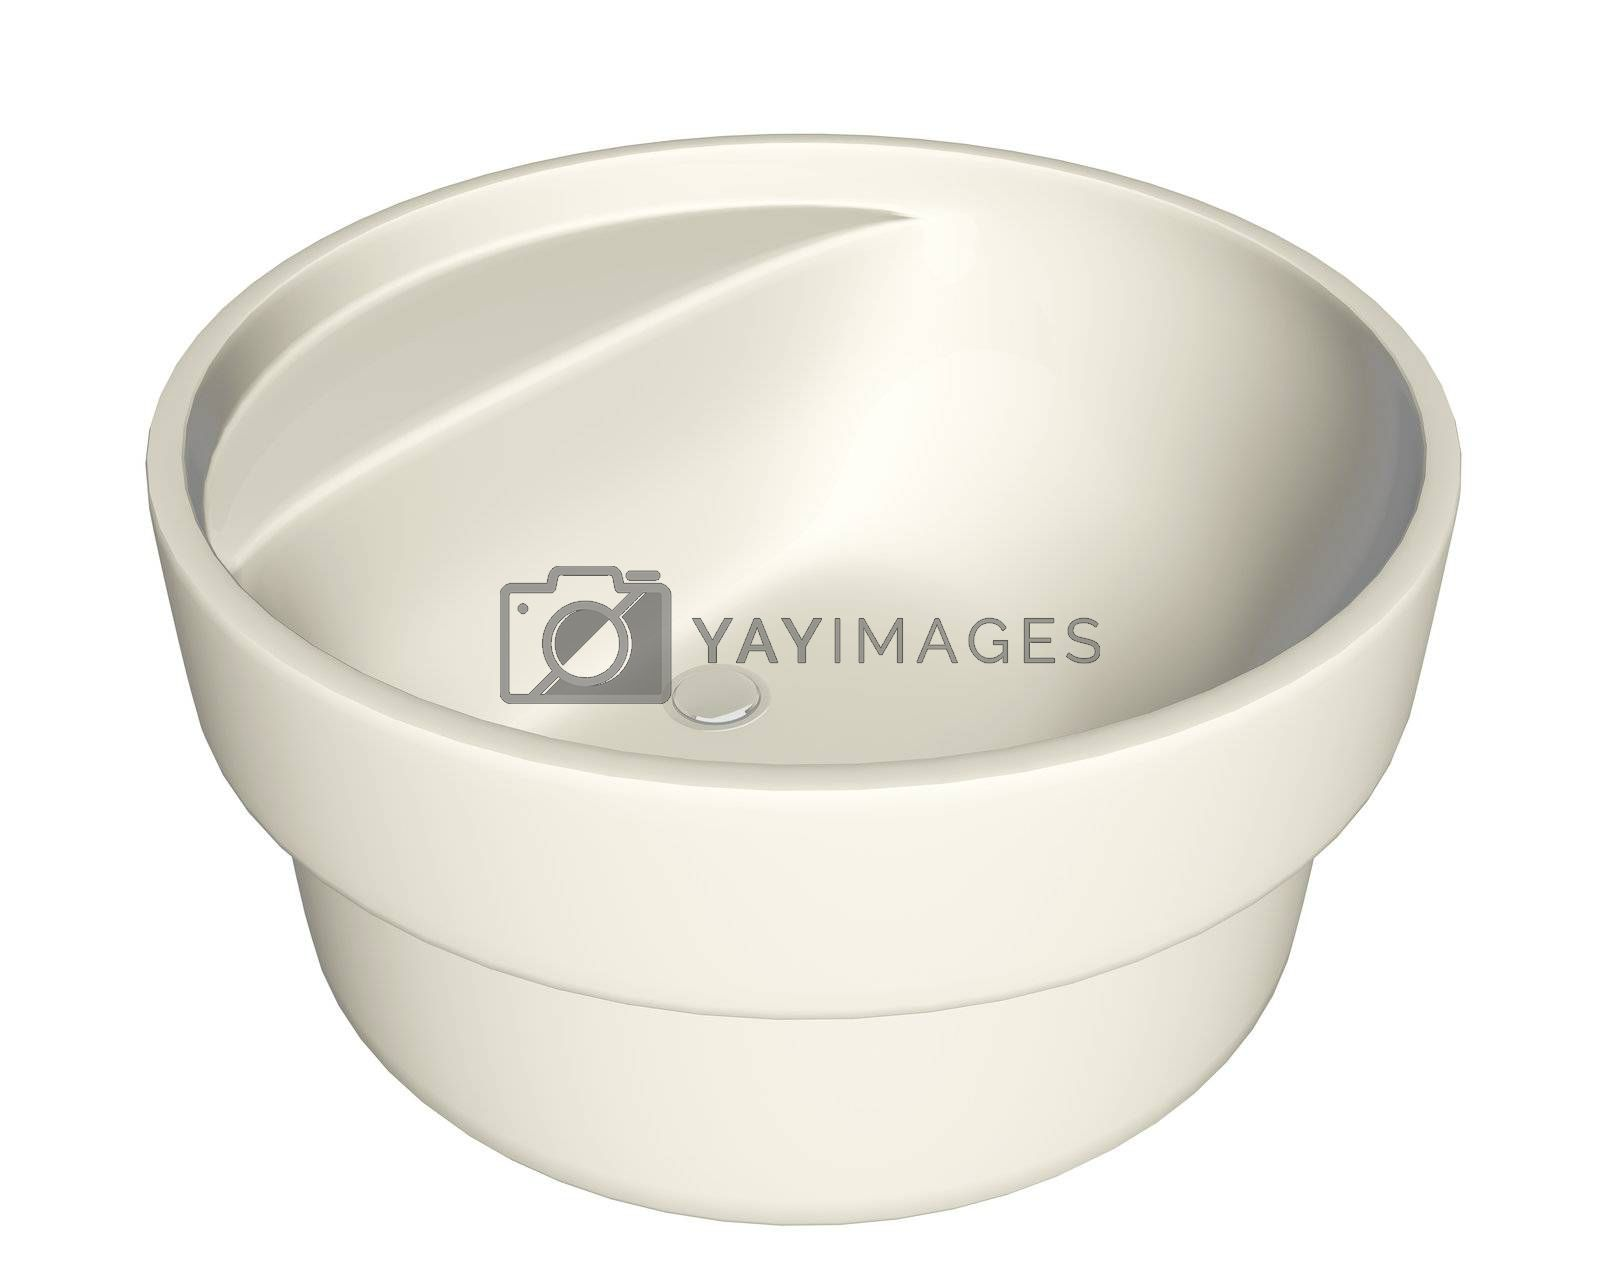 Modern cream-colored washbasin or sink with plumbing fixture, isolated against a white background.